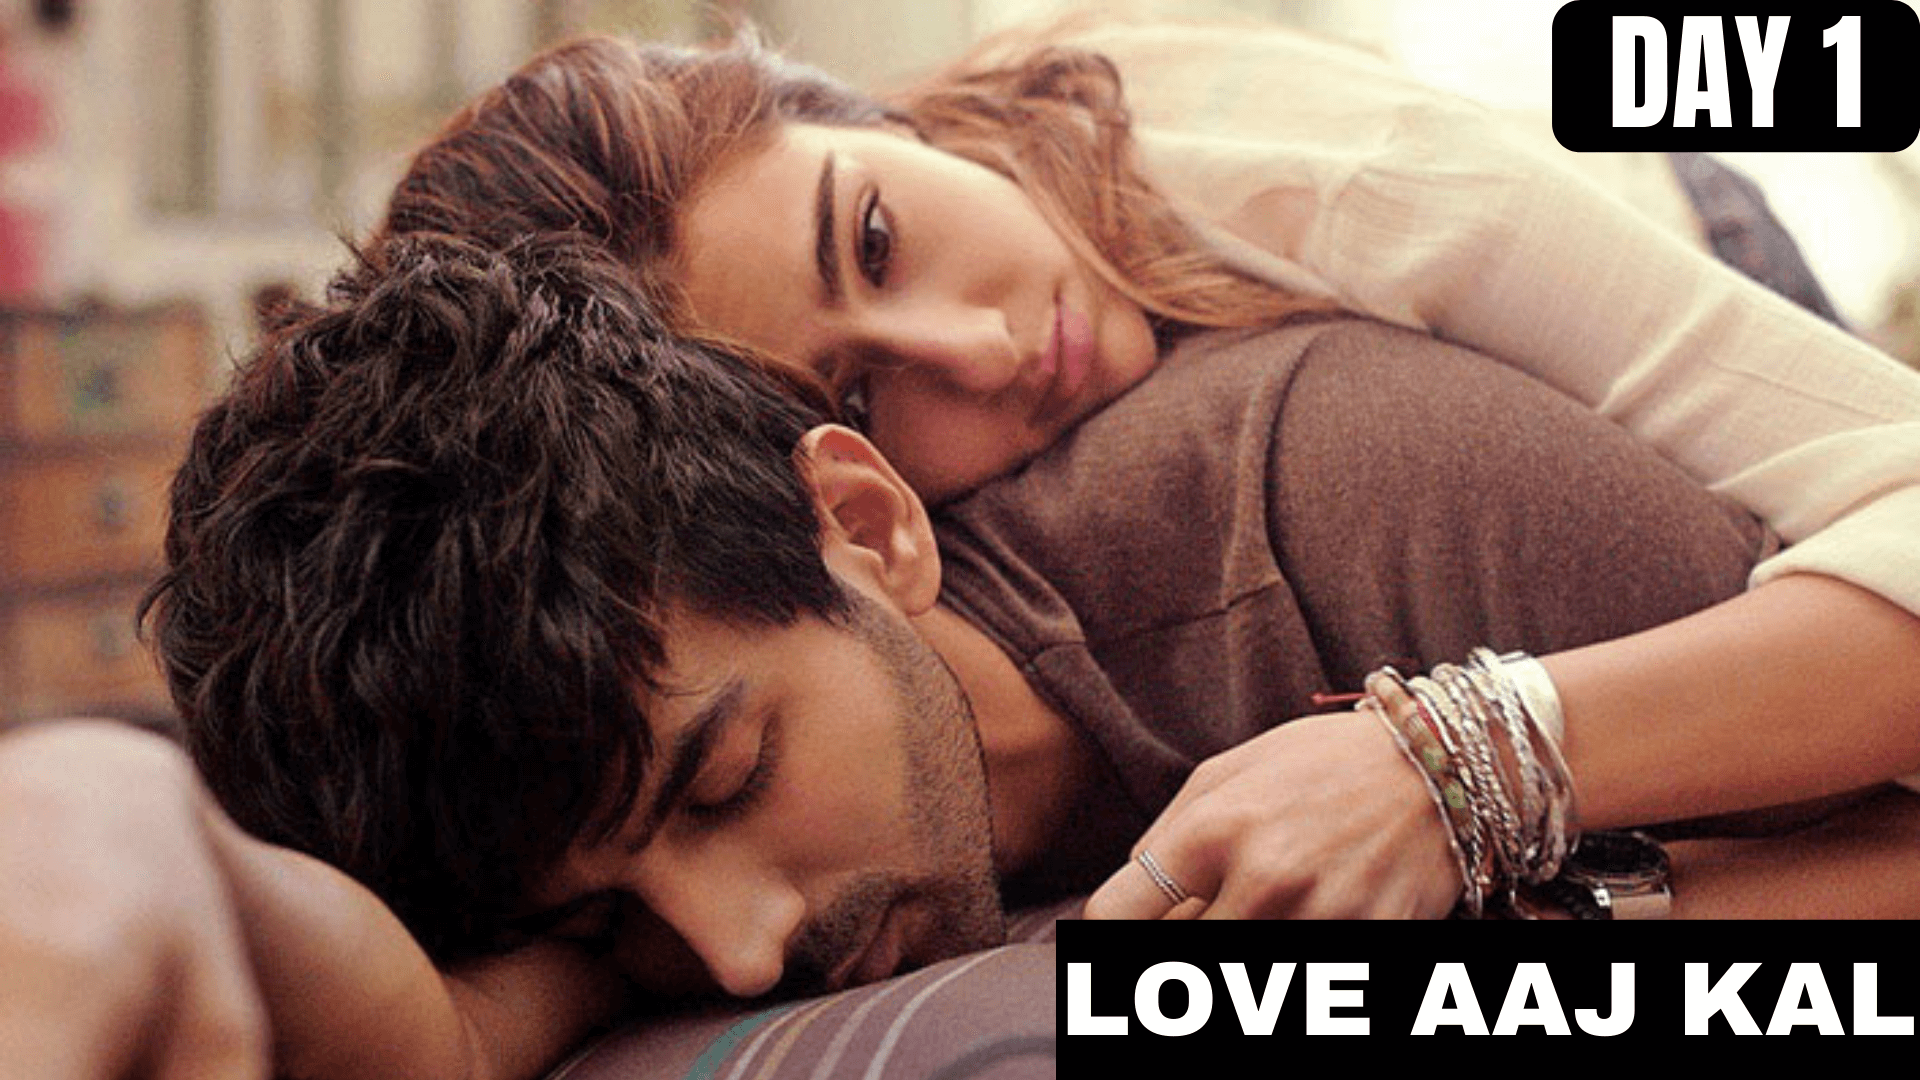 Love Aaj Kal Day 1 Collection – Love Aaj Kal 1st Day Collections at Box Office | Kartik Aaryan, Sara Ali Khan